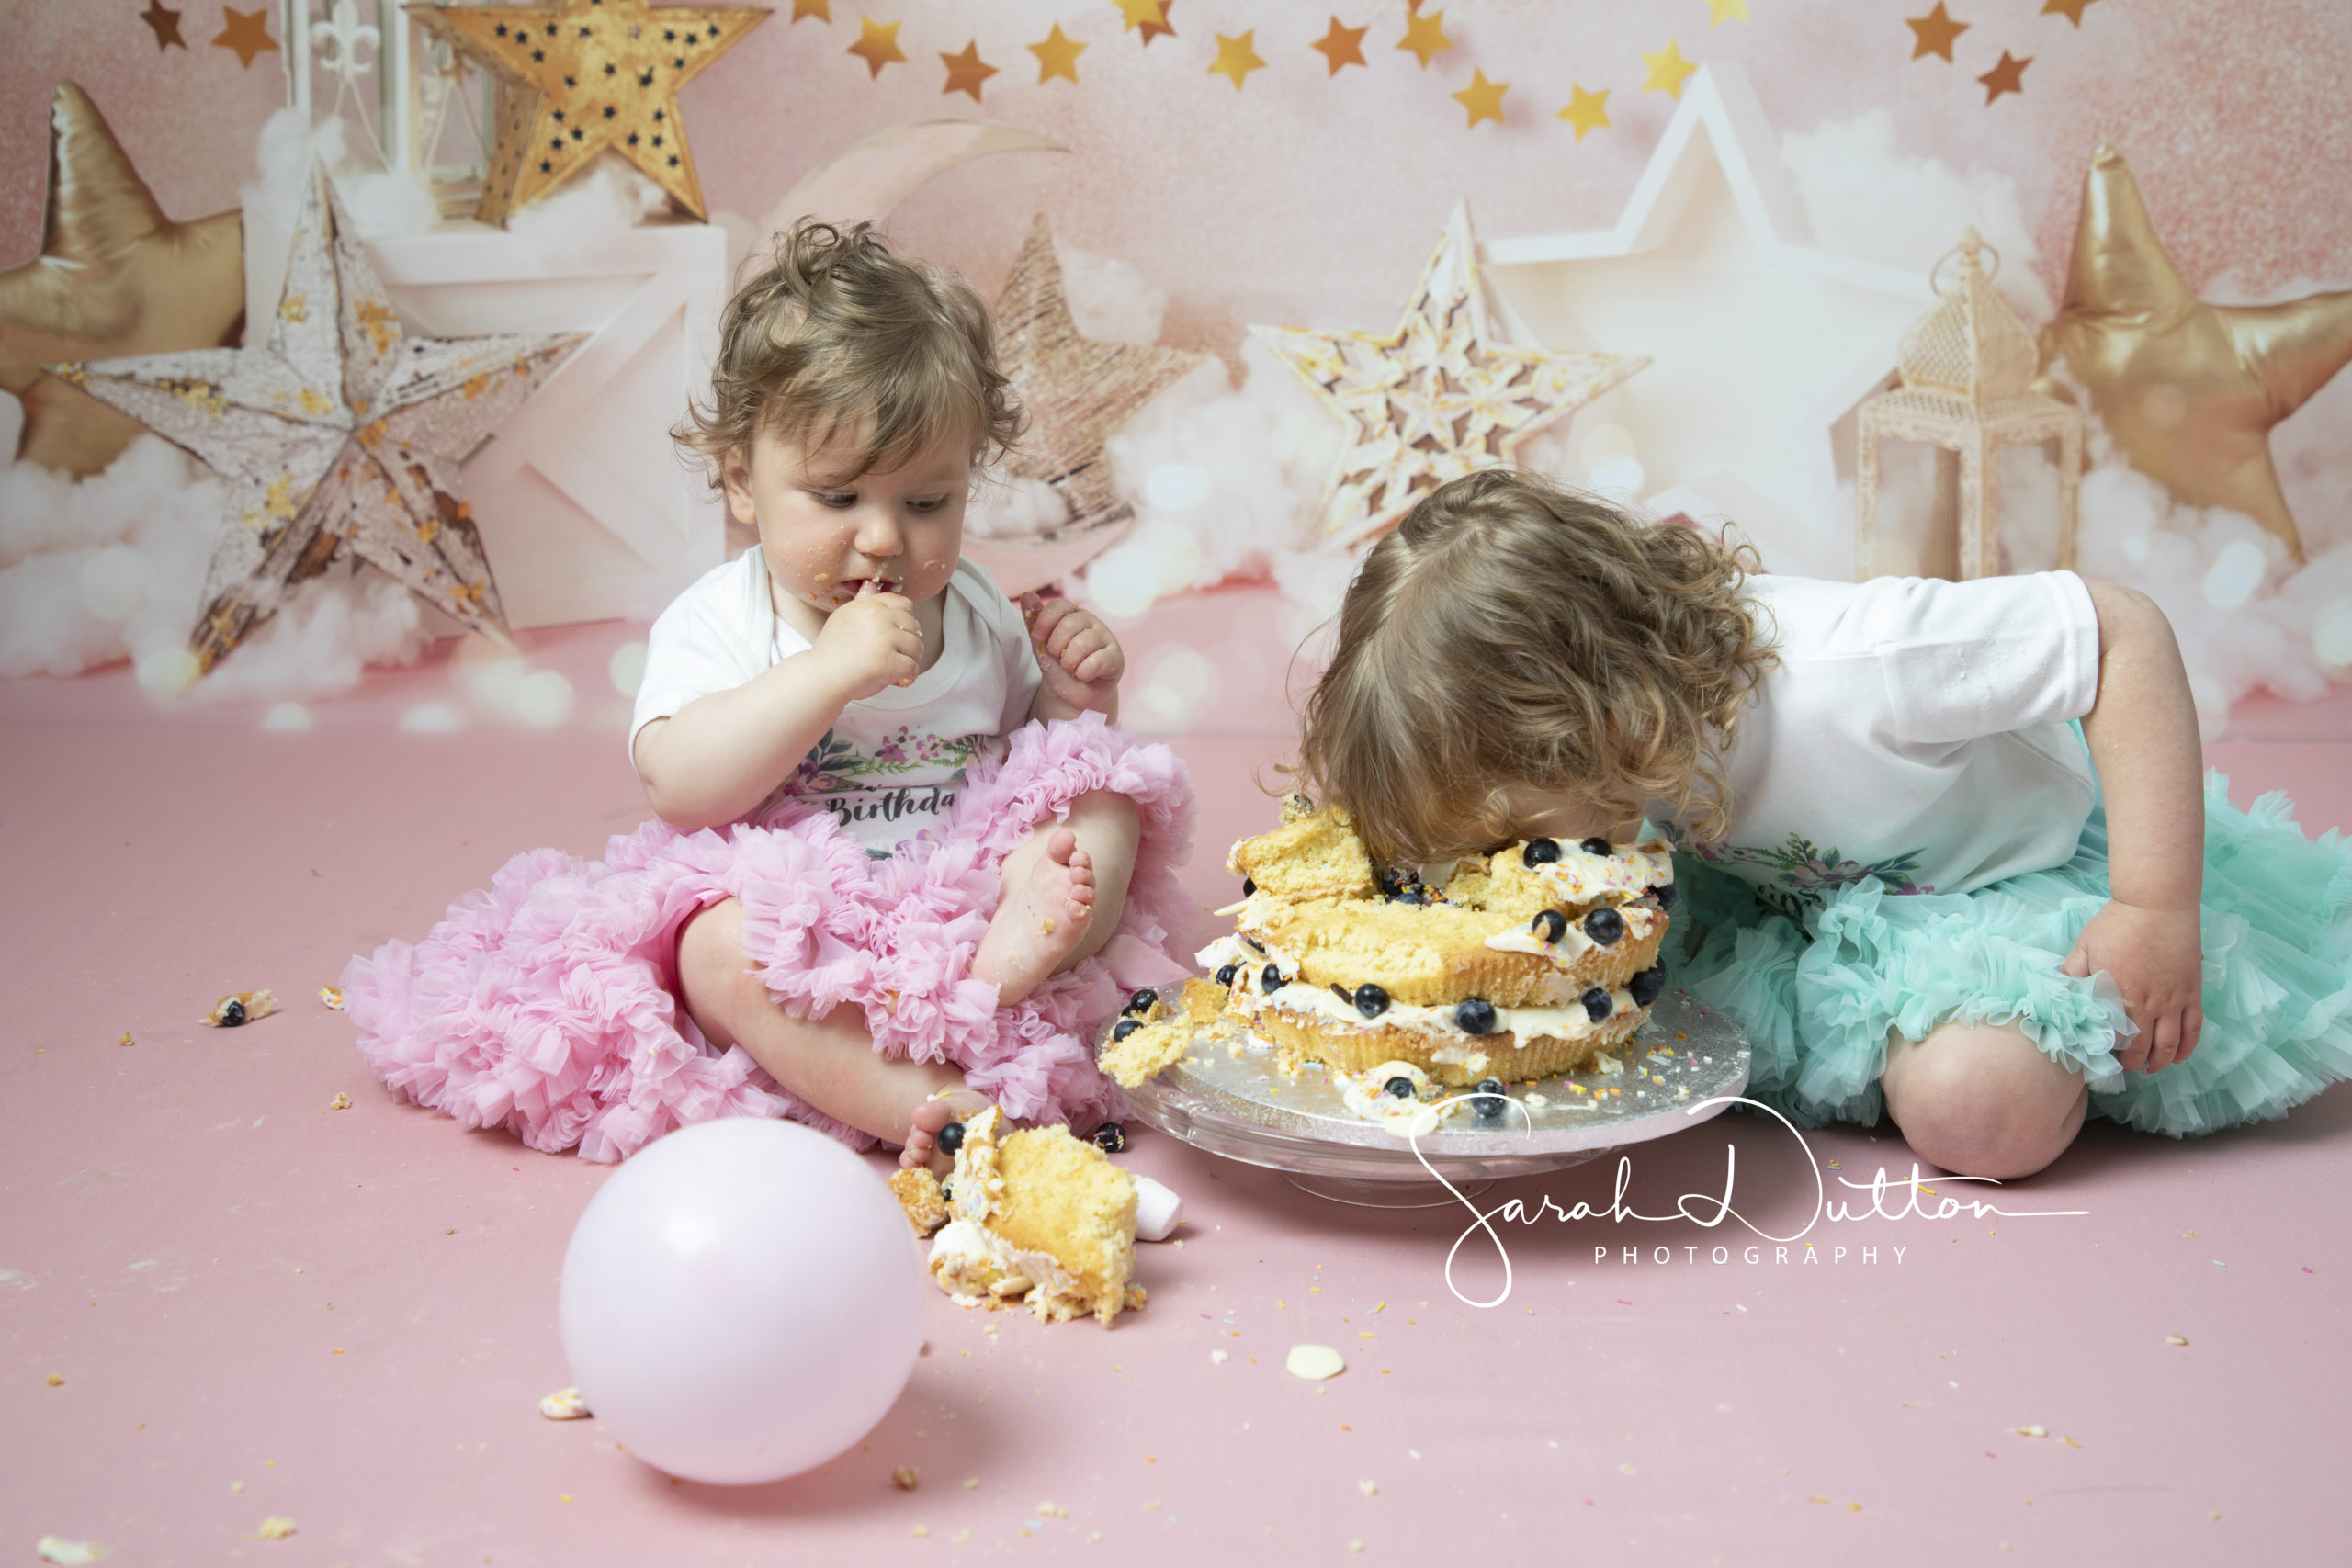 fun at a cake smash in a photographers studio in Whitchurch Hampshire taken by a professional photographer in her studio.